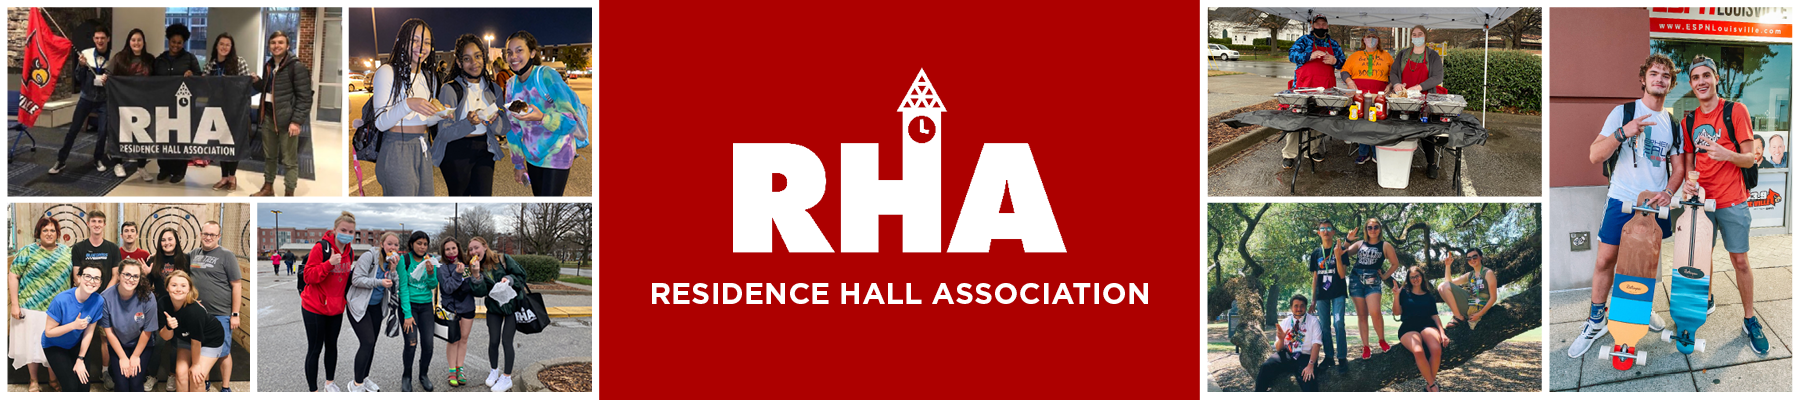 residence hall association and students on campus